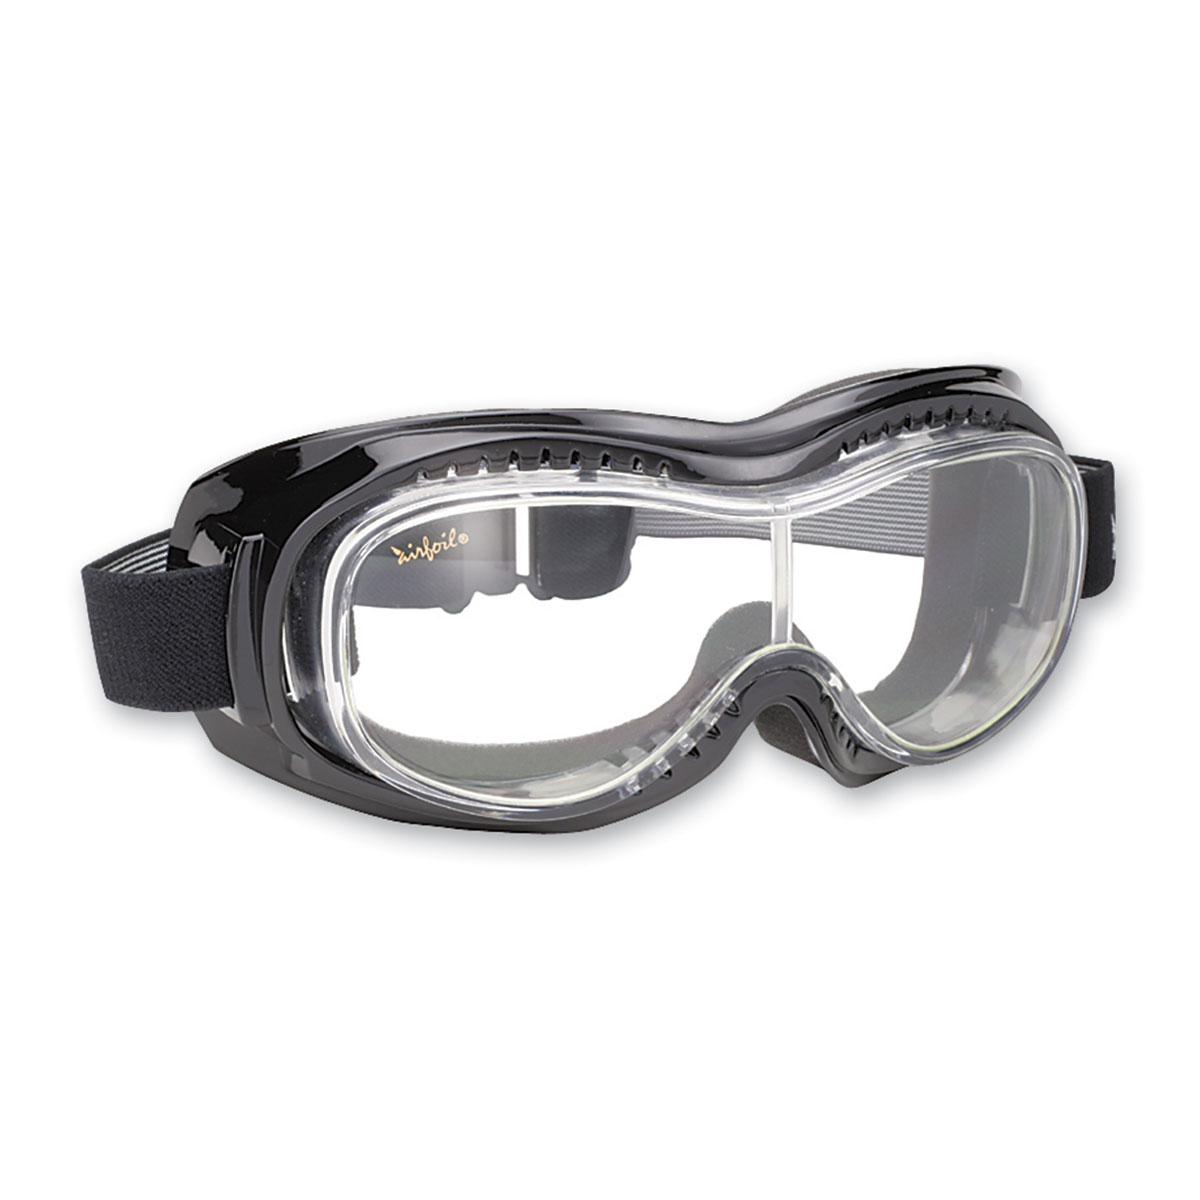 Airfoil 'Over-Glasses' Goggle with Clear Lens